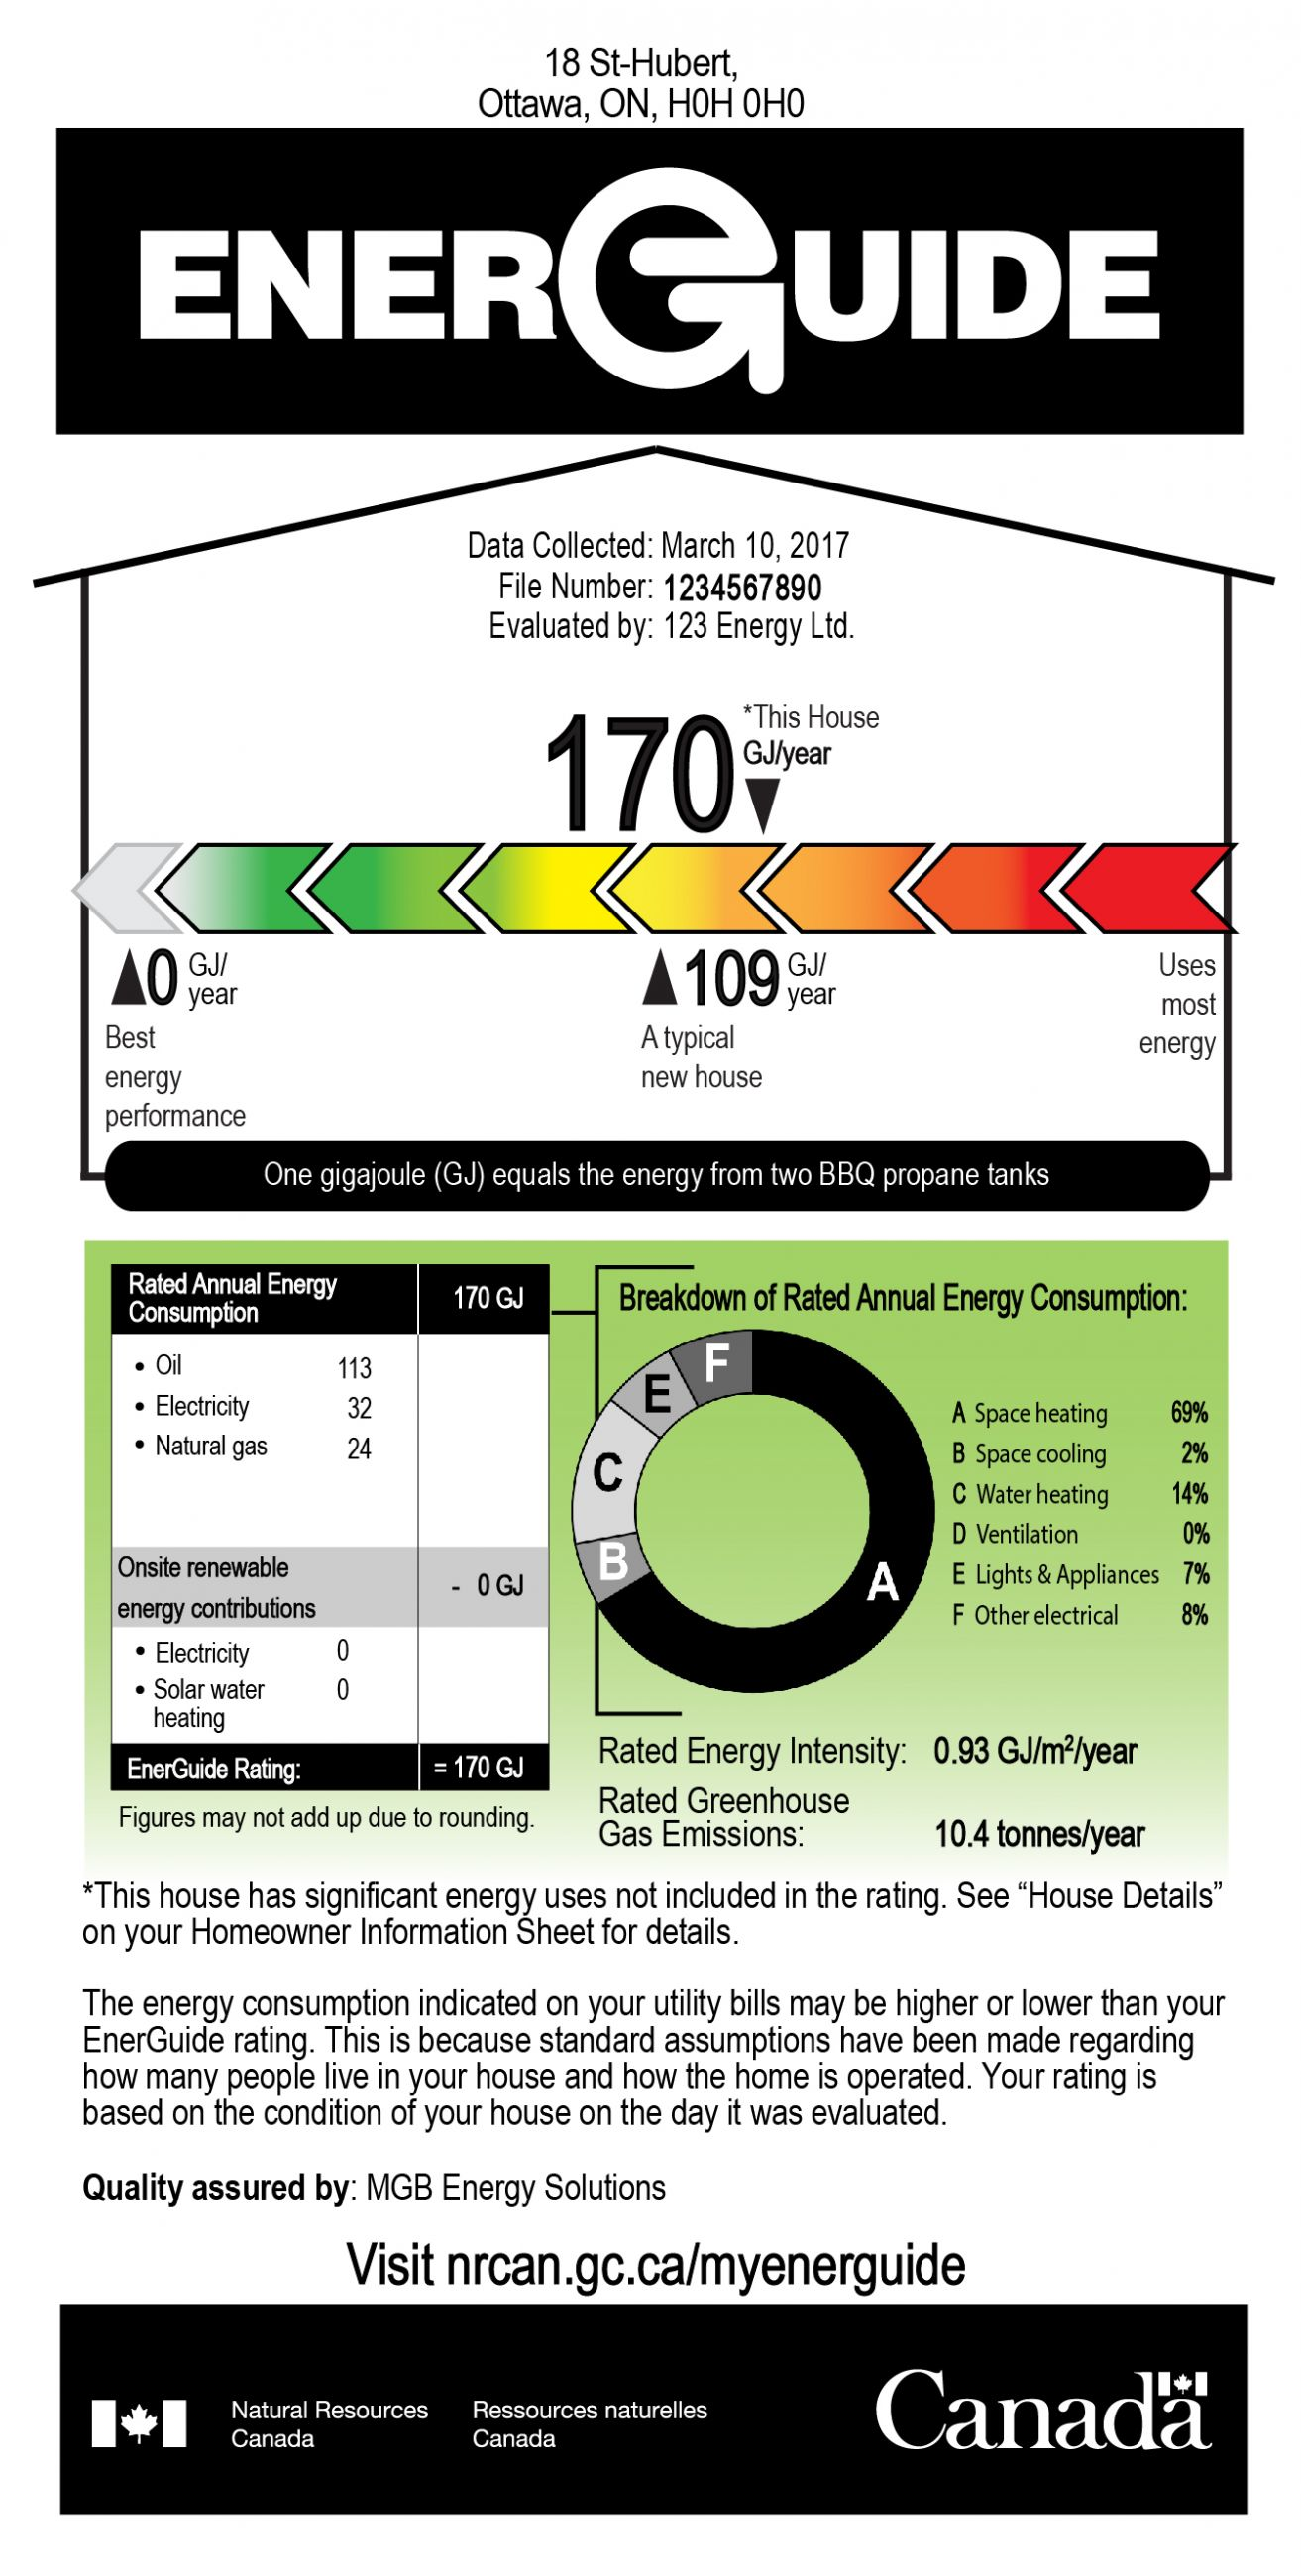 An example of an EnerGuide label that provides information about the evaluation for the homeowner, EnerGuide rating, EnerGuide rating scale, the calculation of the rating, and breakdown of the rated annual energy consumption